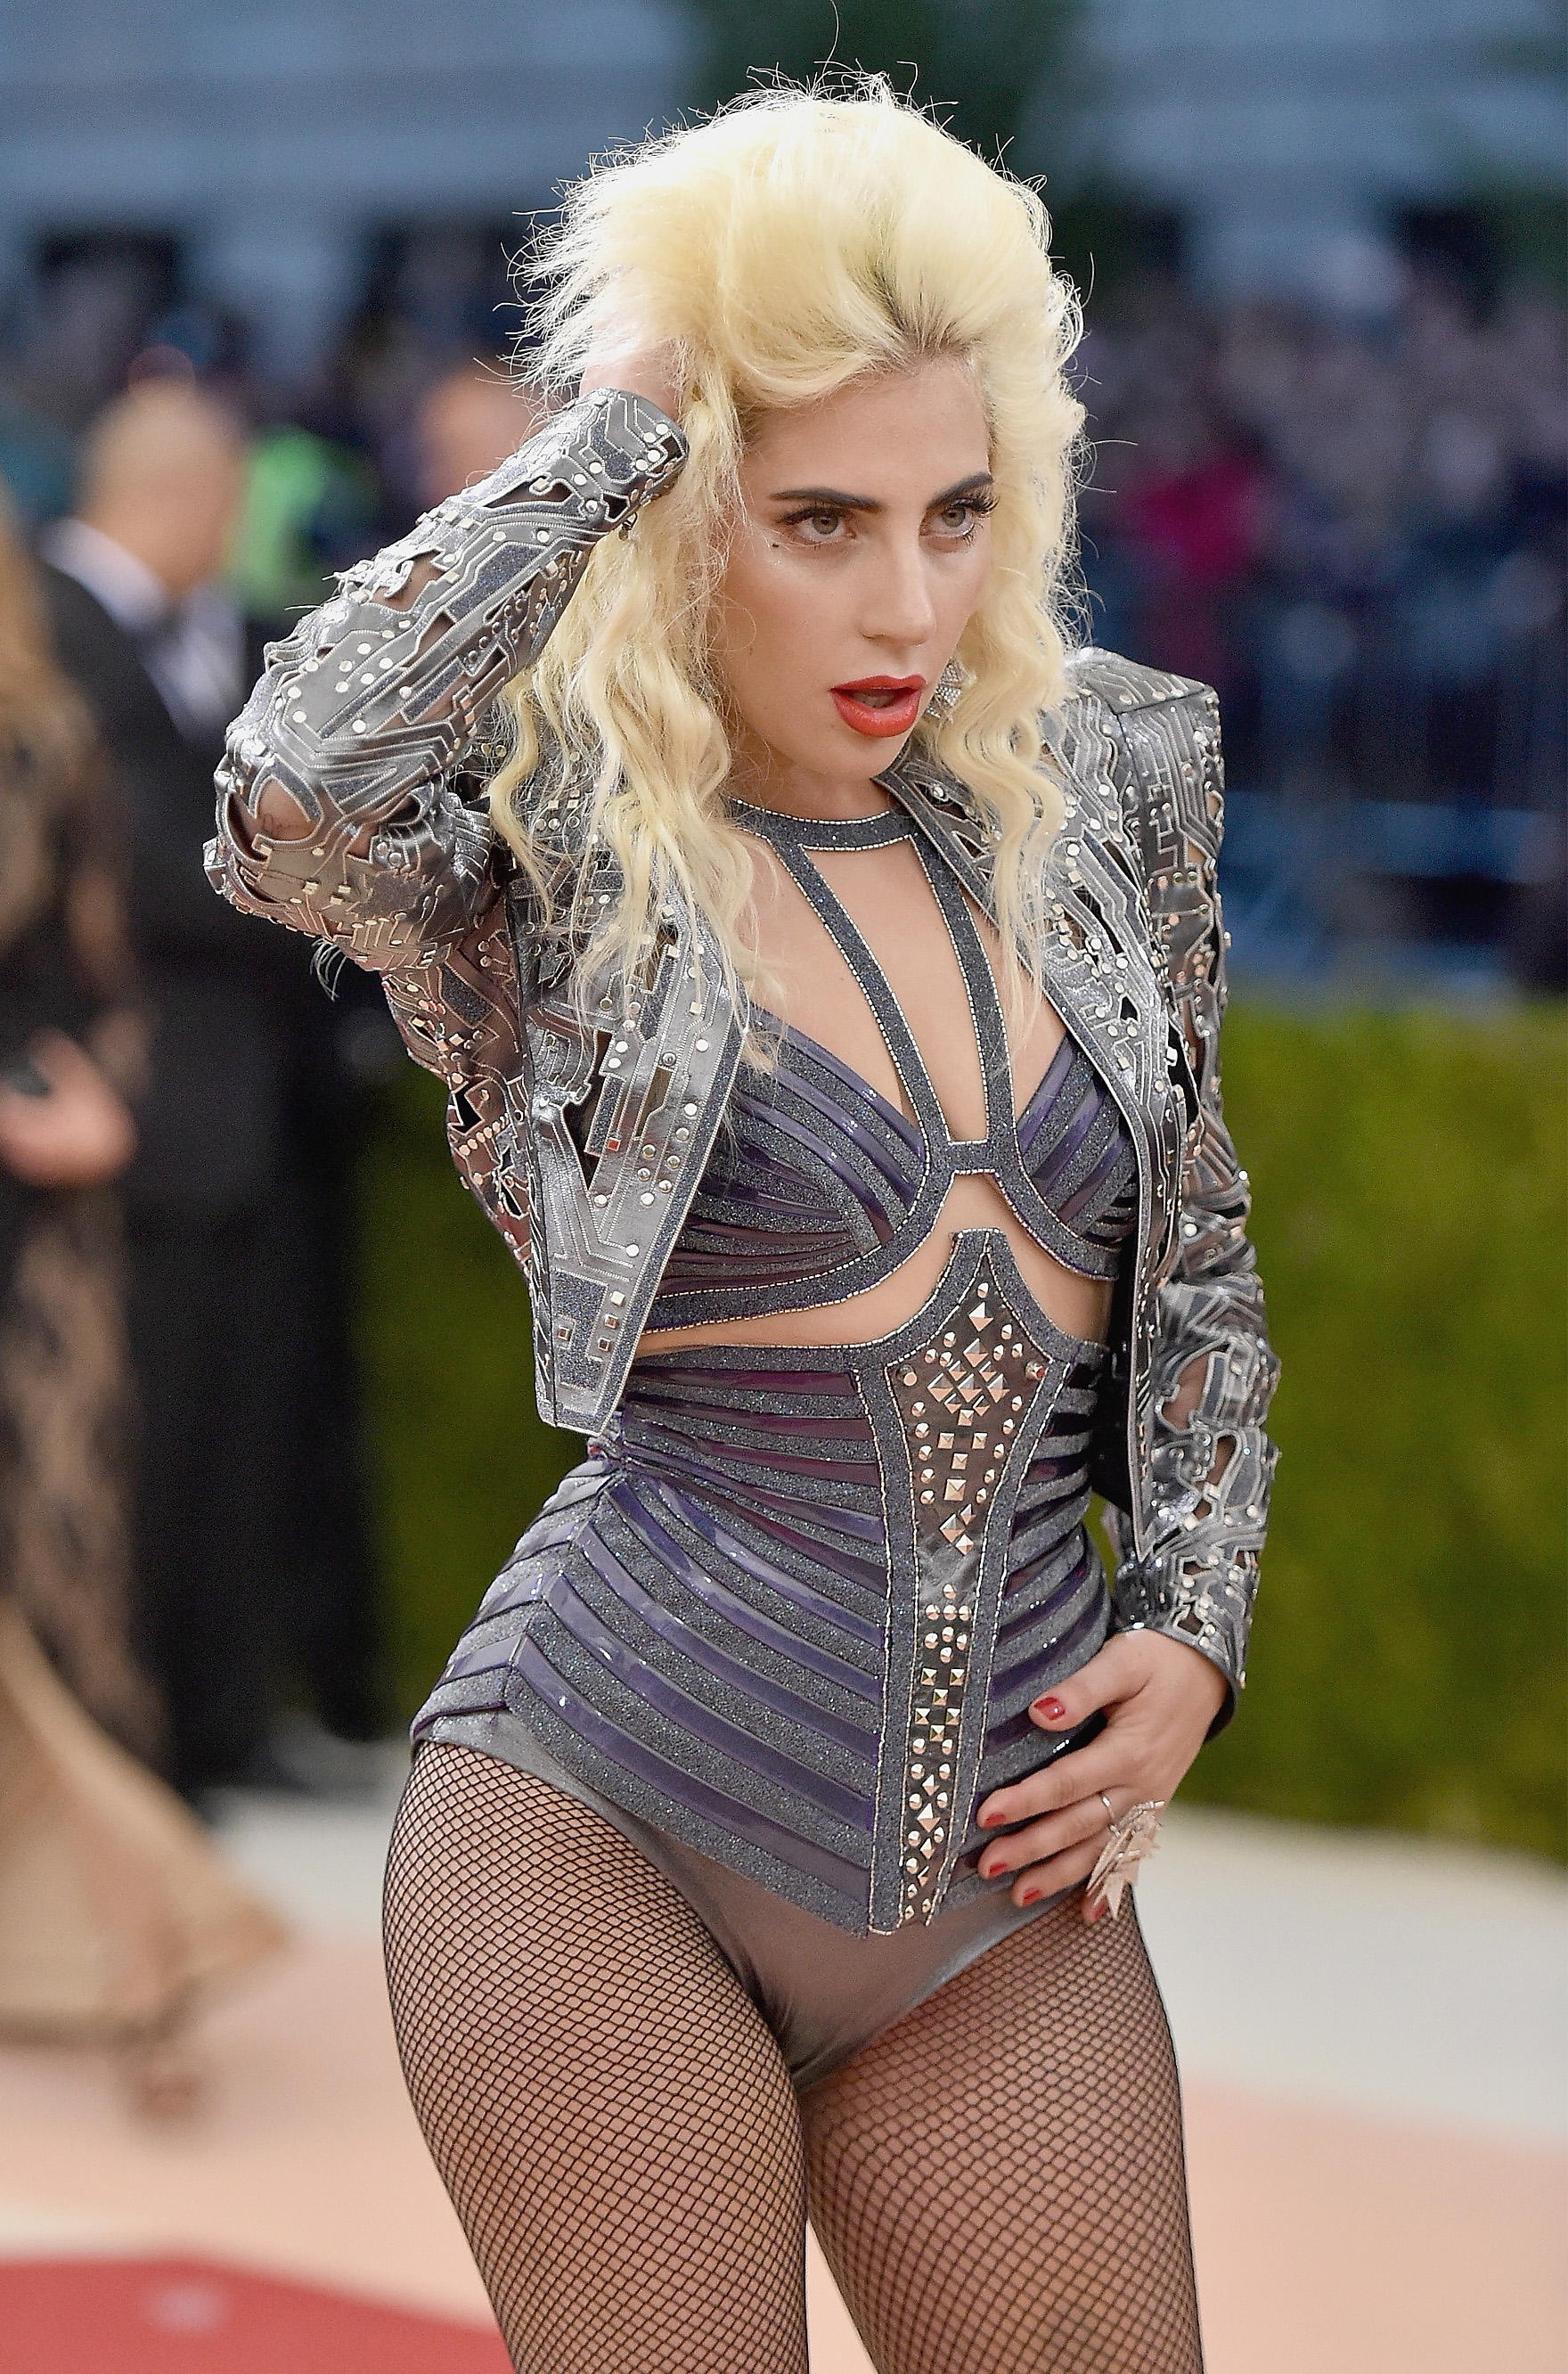 Lady Gaga at the 'Manus x Machina: Fashion In An A